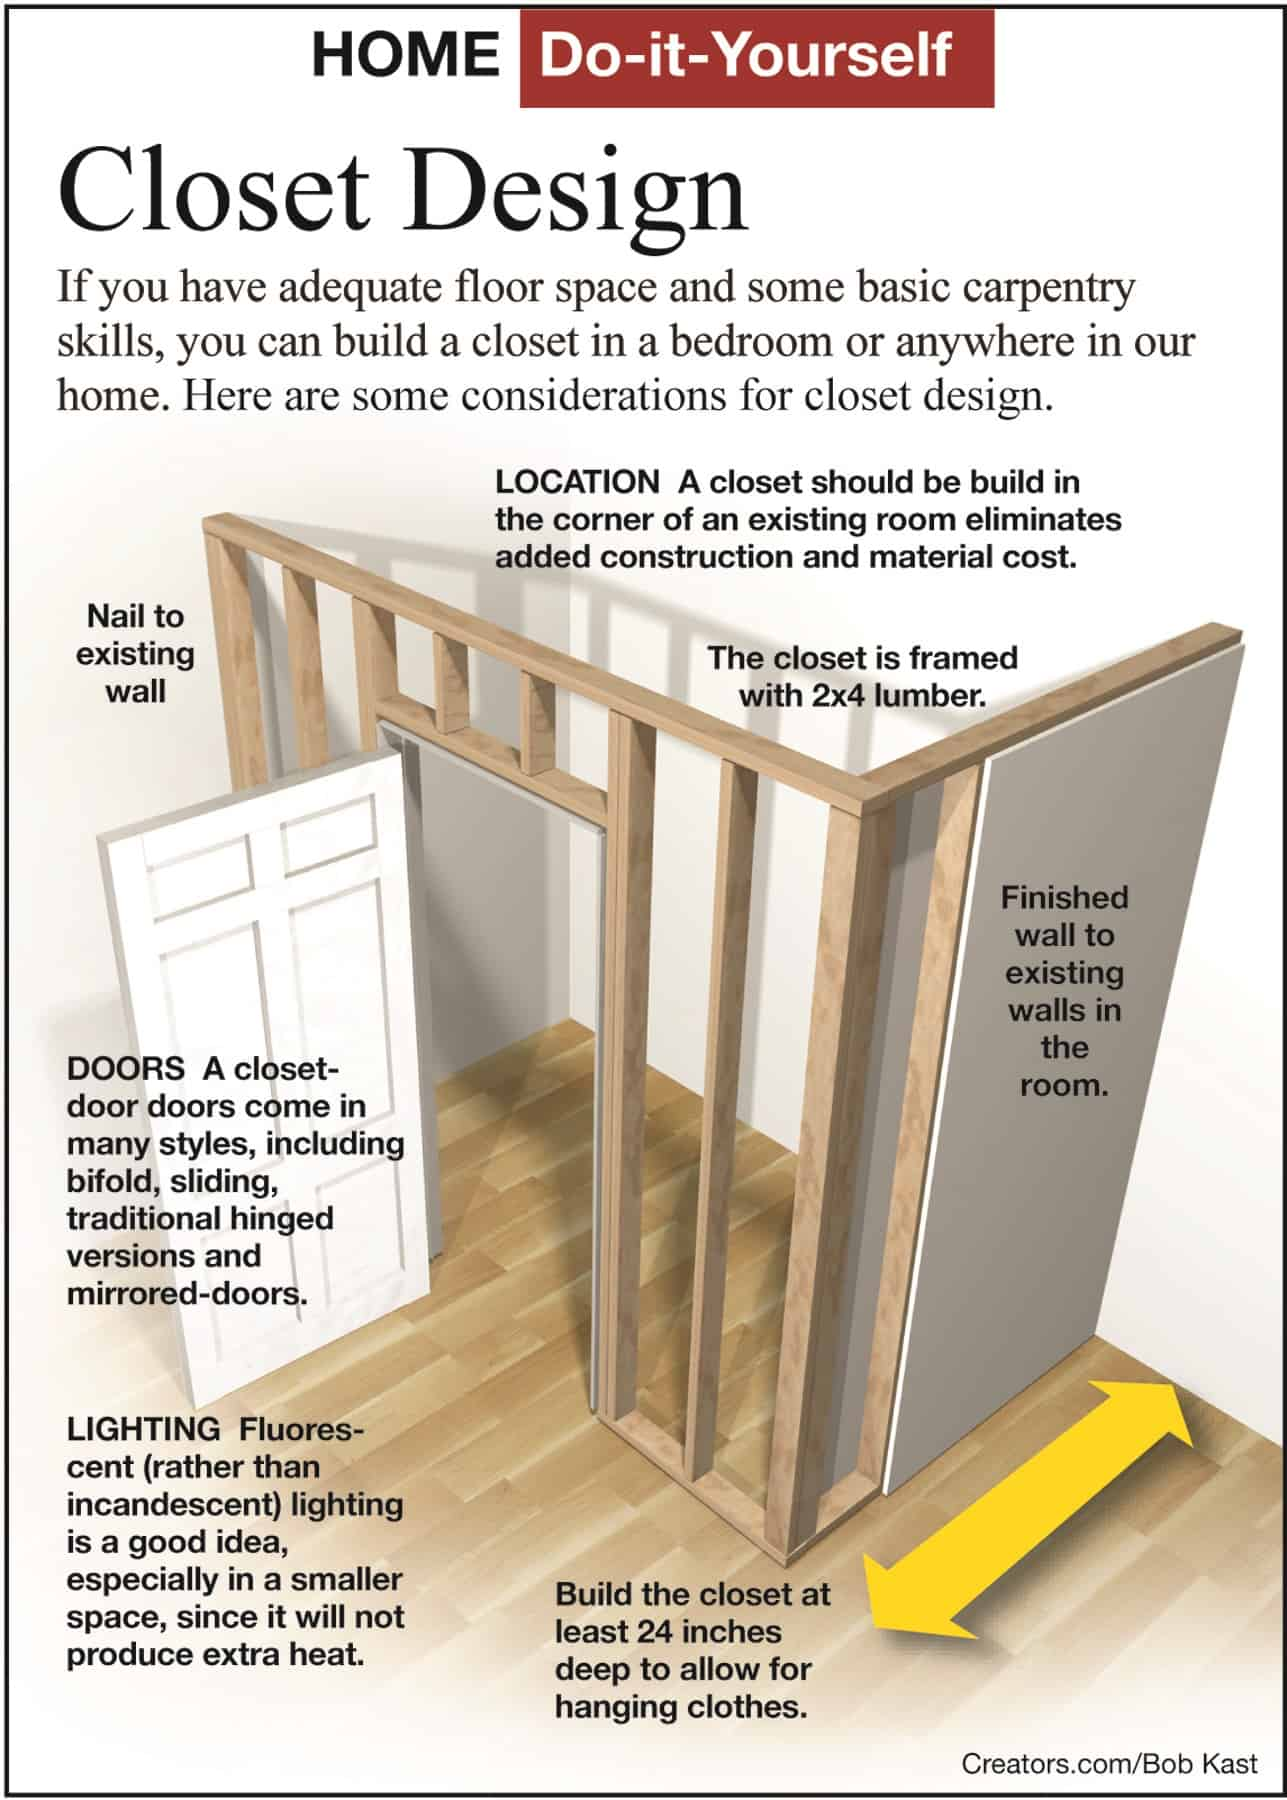 This Design Is Particularly Easy To Build Because You Can The Closet Walls Flat On Floor And Then Tilt Them Up When They Are Completed